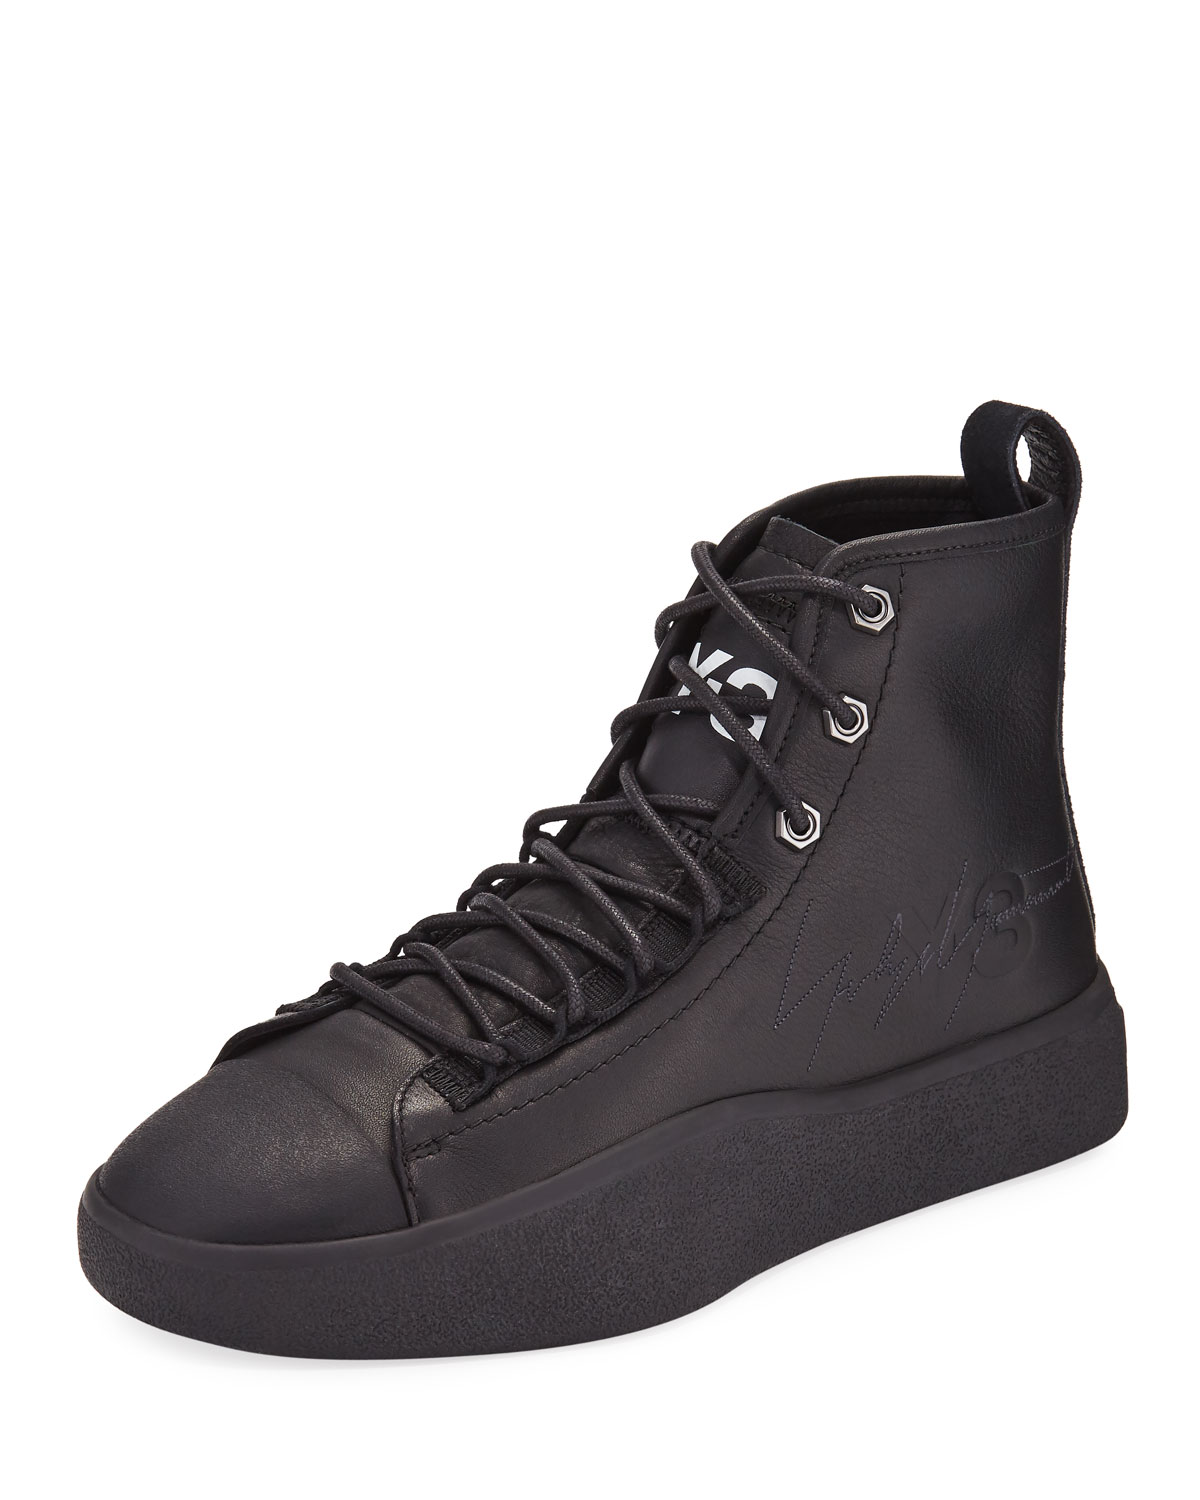 6619518d1461 Y-3 Men s Bashyo Leather High-Top Sneakers